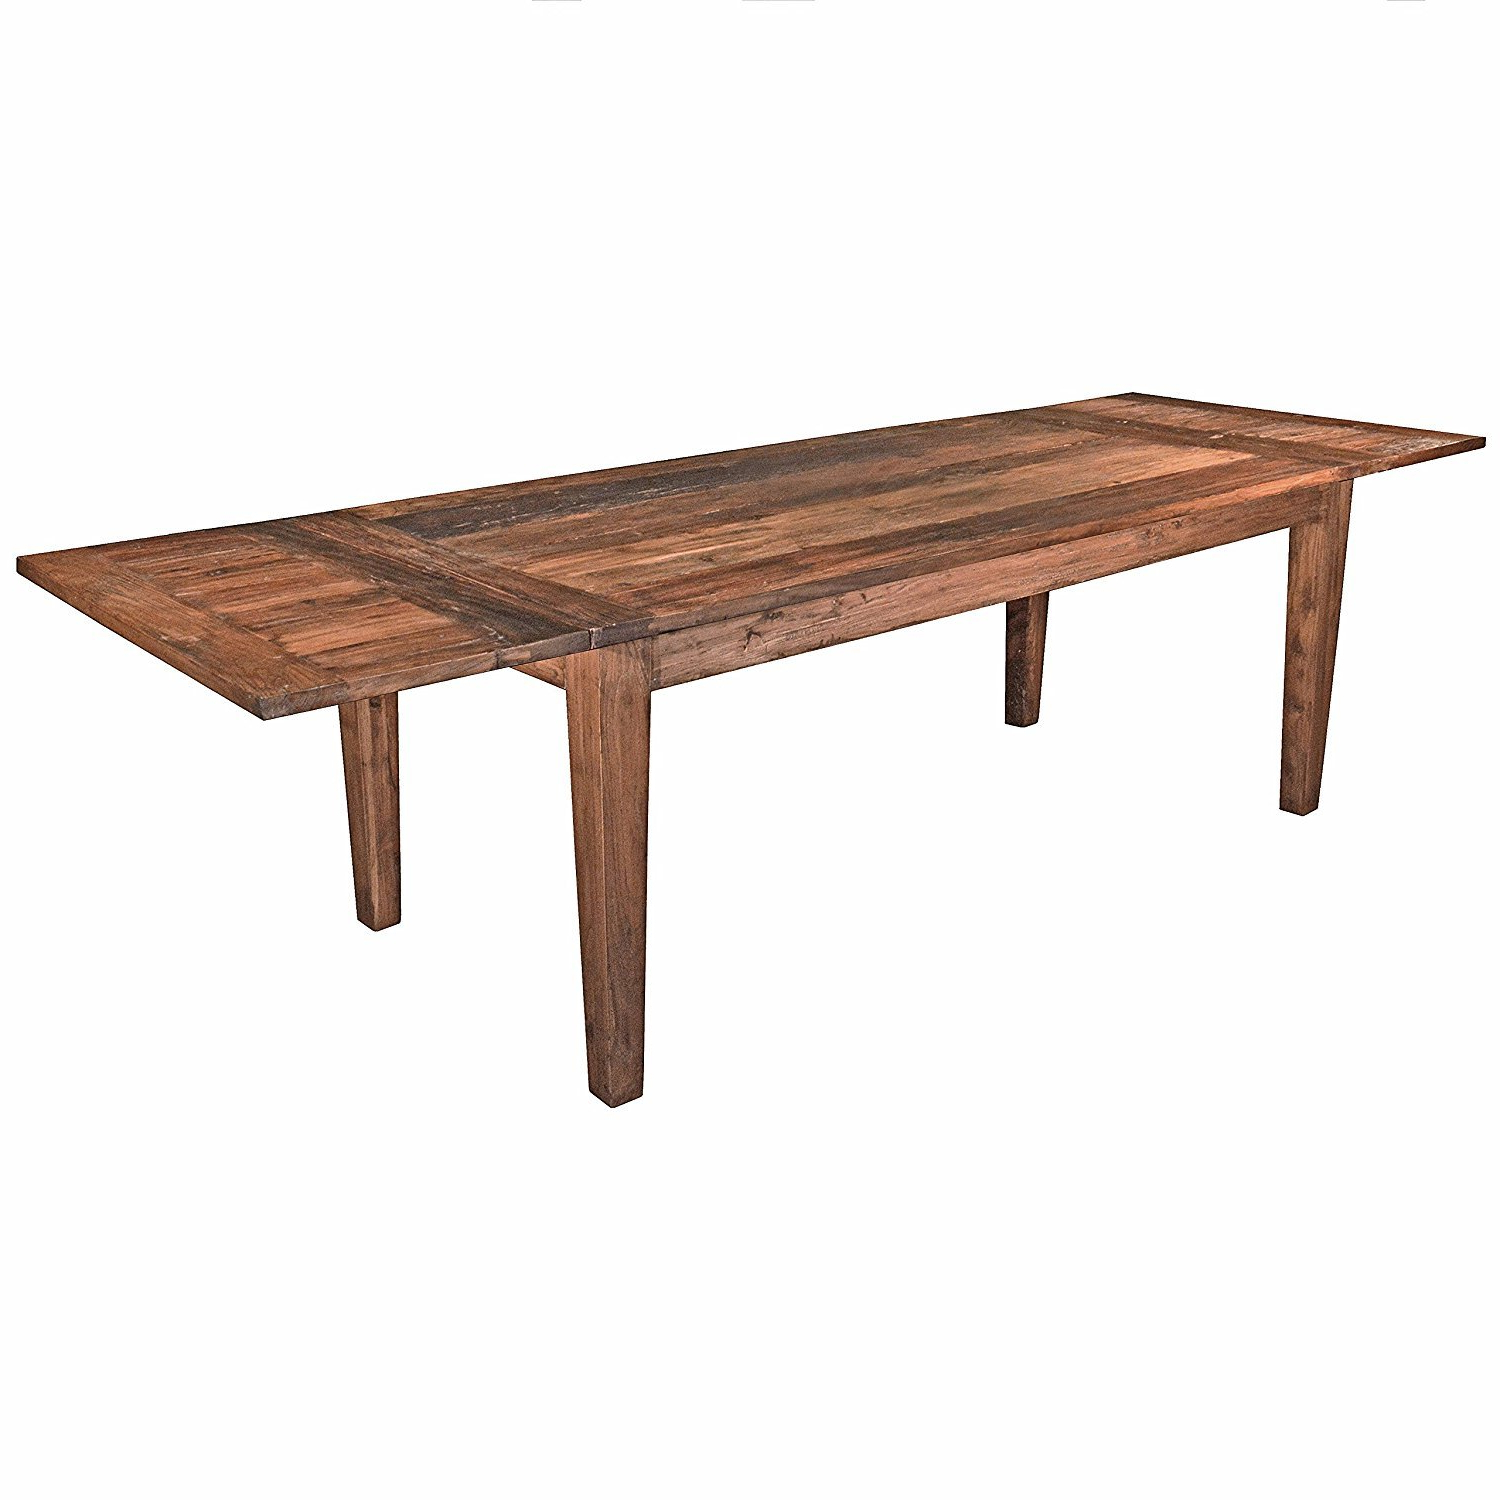 Bowry Reclaimed Wood Dining Tables pertaining to Most Current Amazon - Rustic Solid Reclaimed Wooden Modern Antique